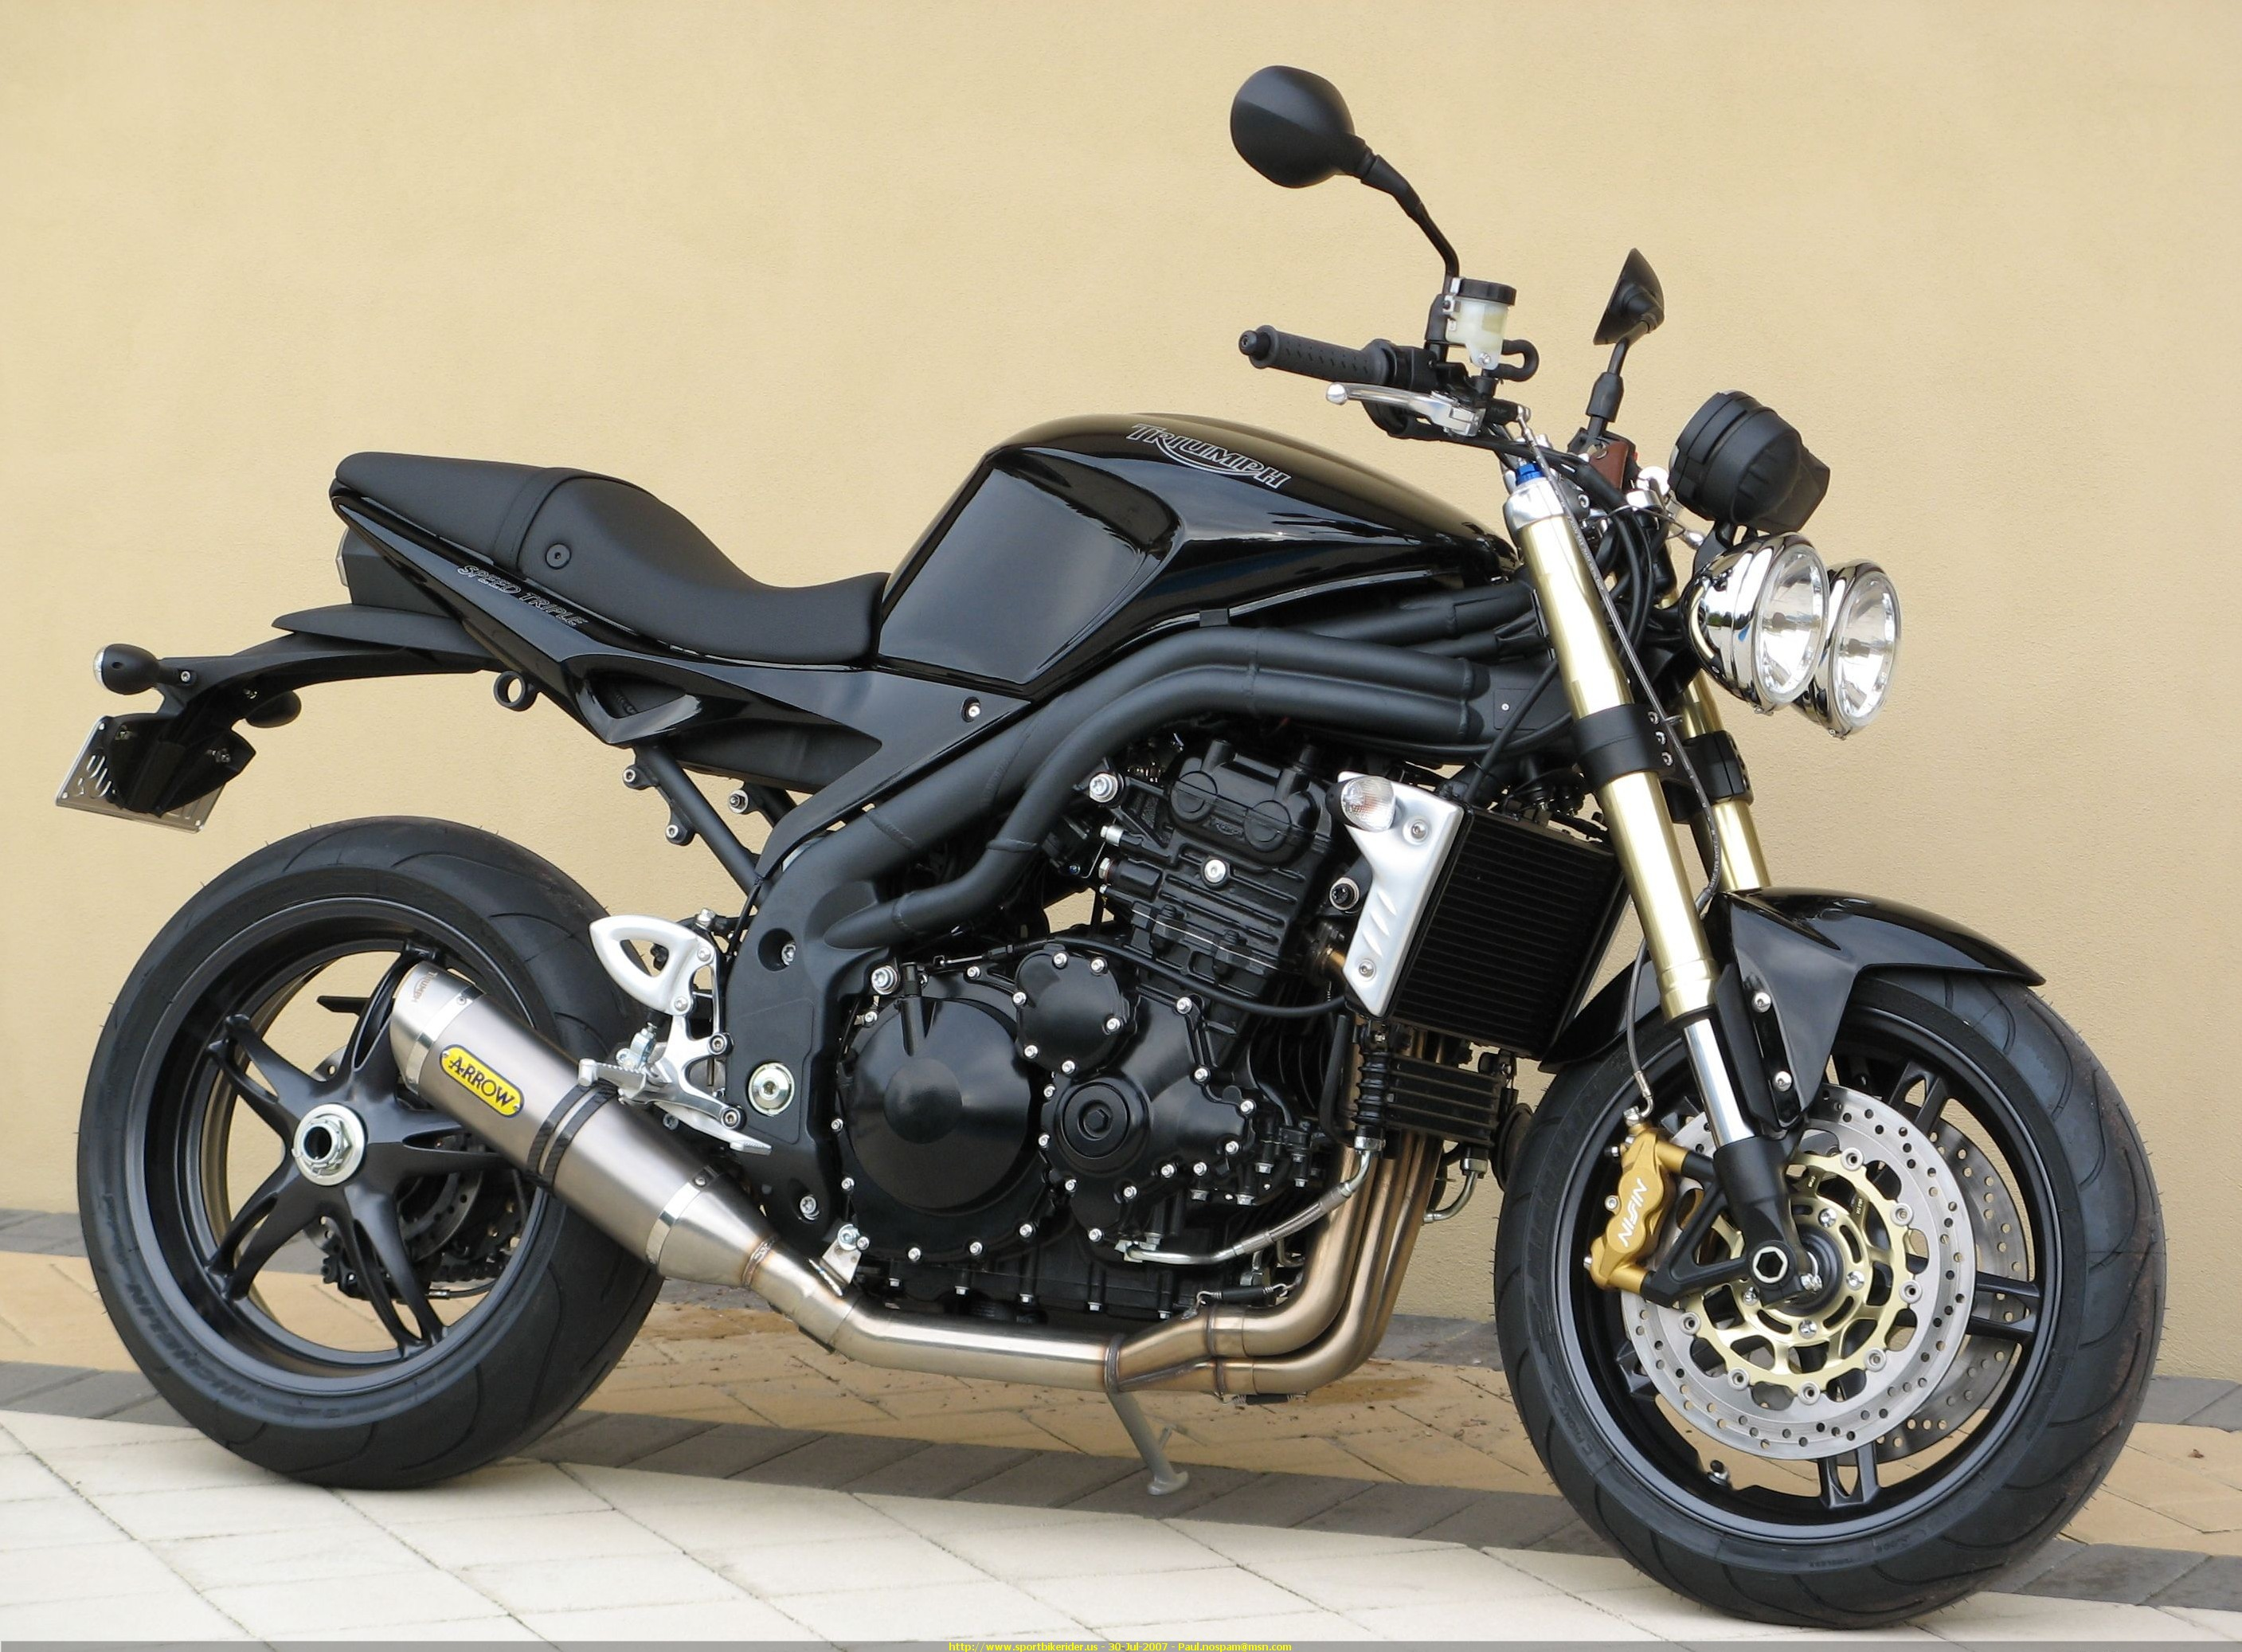 2007 TRIUMPH SPEED TRIPLE - Image #10